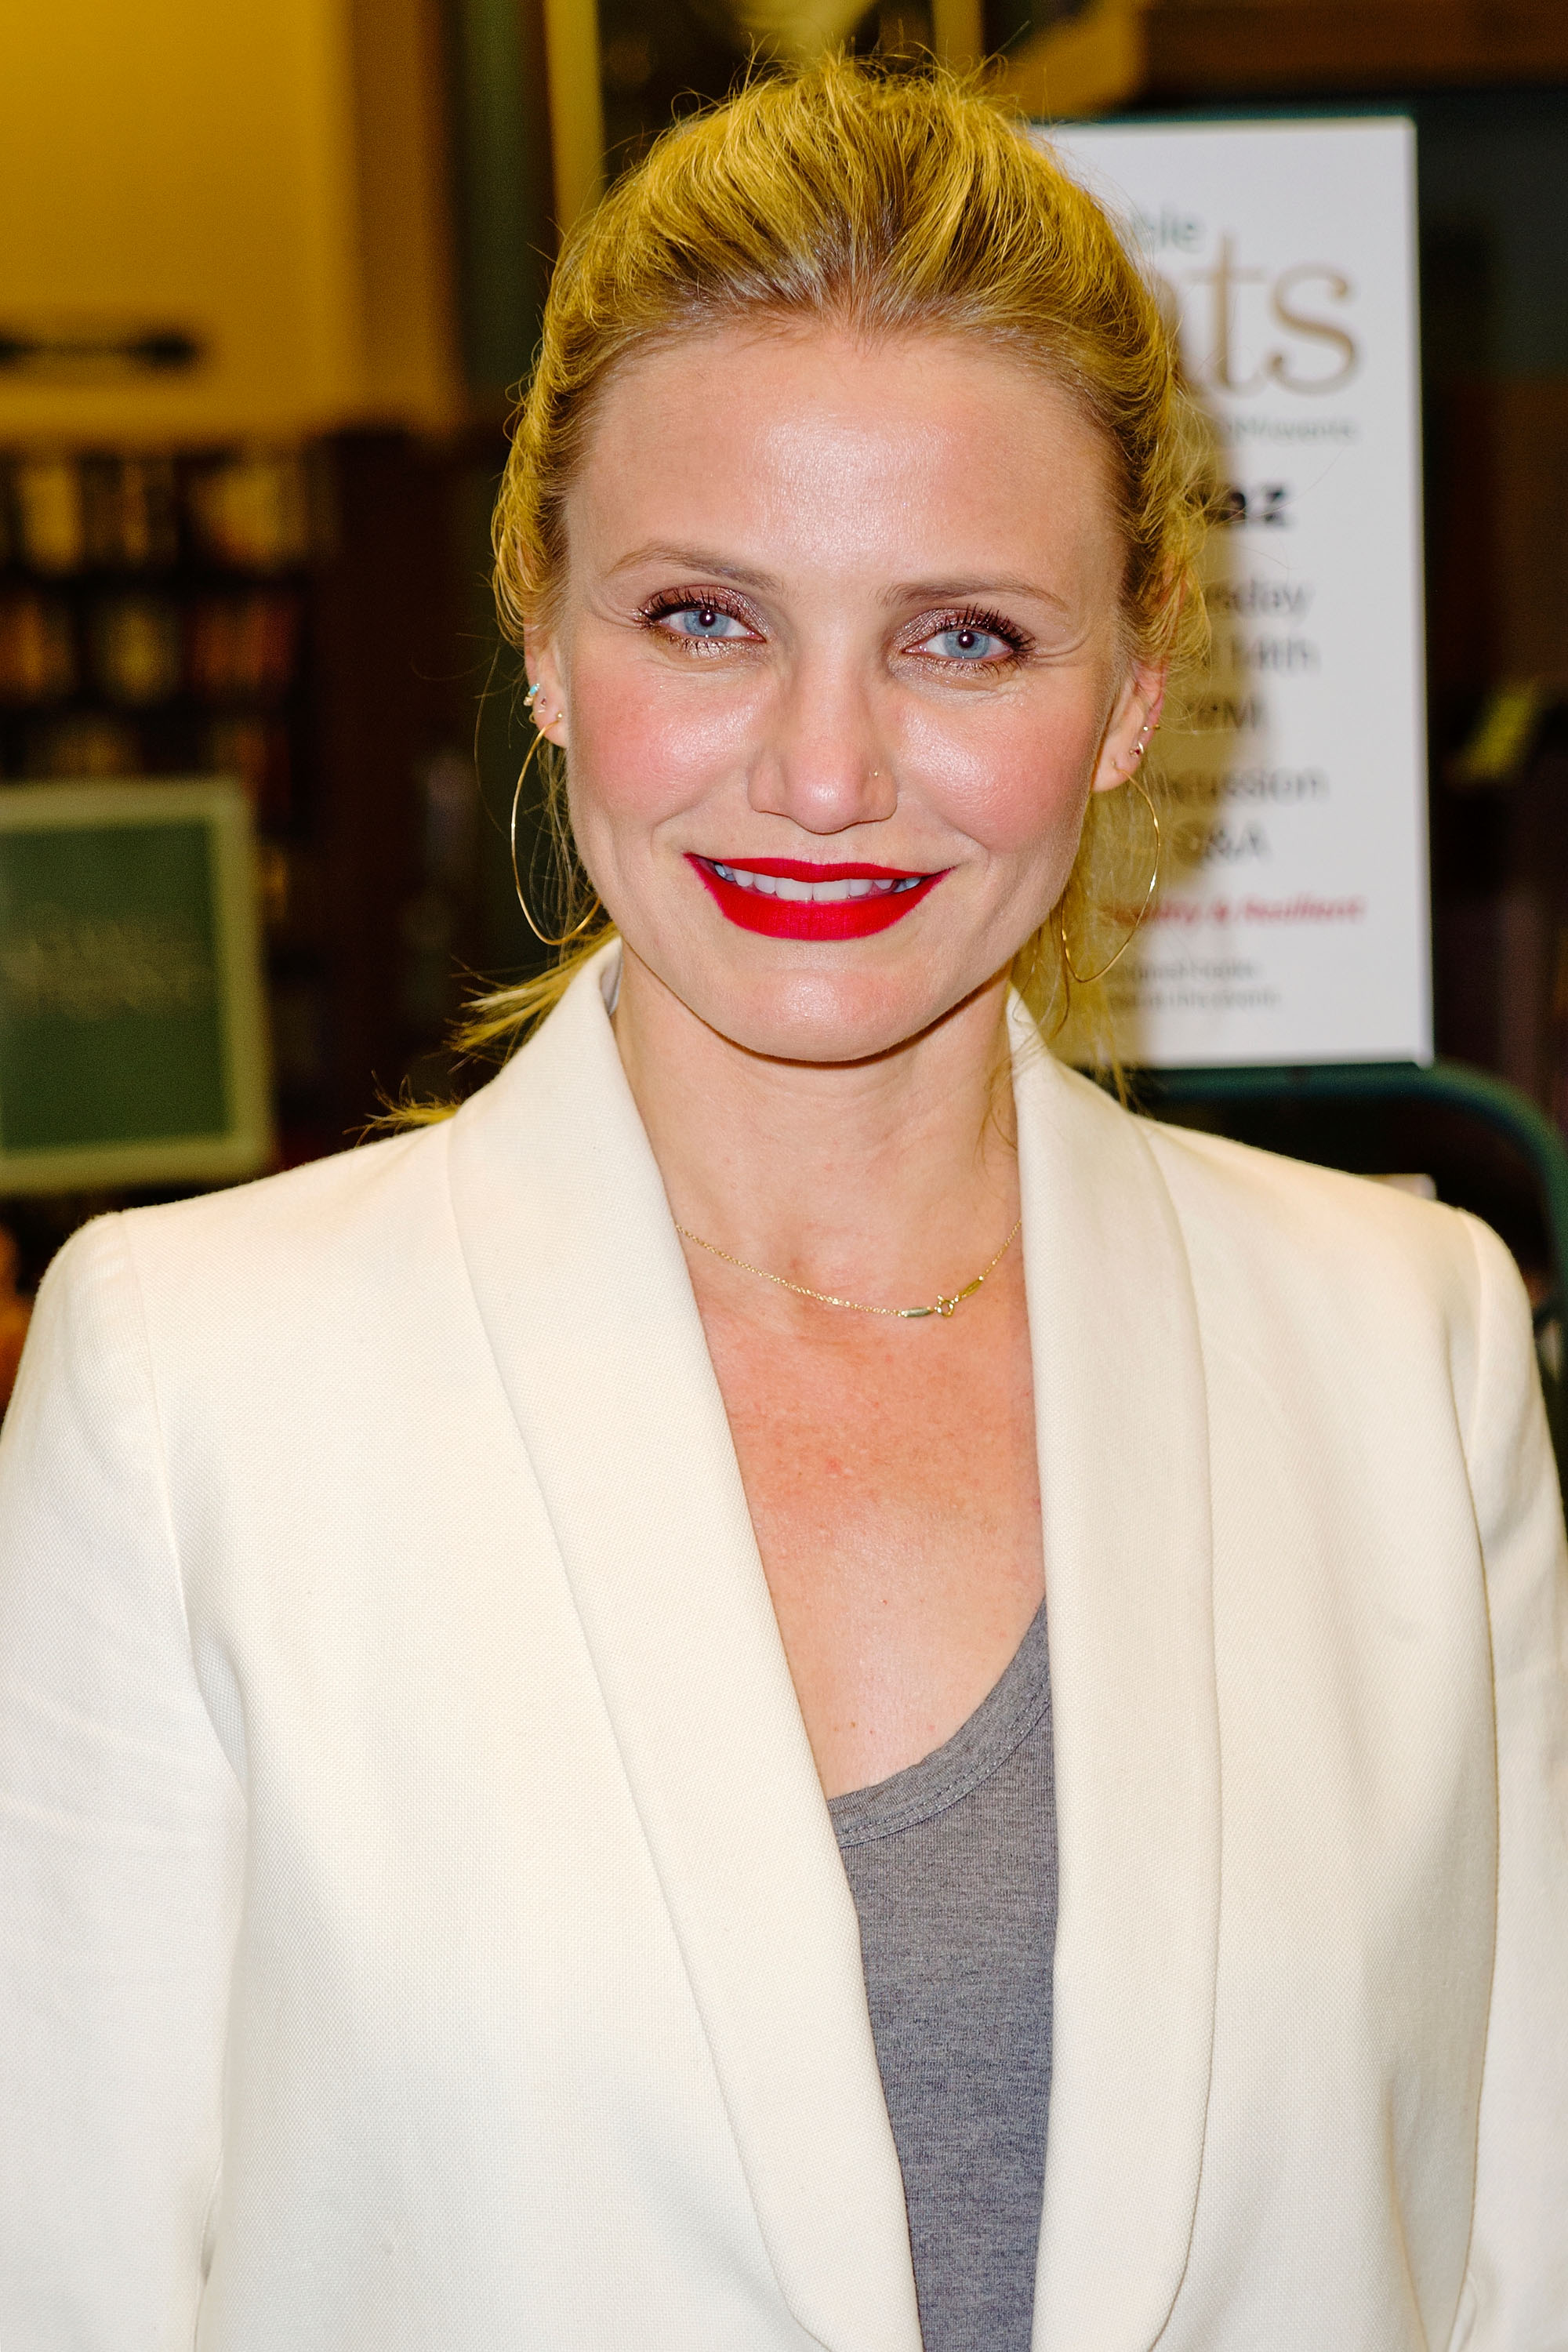 Cameron Diaz signs copies of her book 'The Longevity Book: The Science Of Aging, The Biology Of Strength, And The Privilege Of Time' at Barnes & Noble on April 14, 2016, in Huntington Beach, California. | Source: Getty Images.